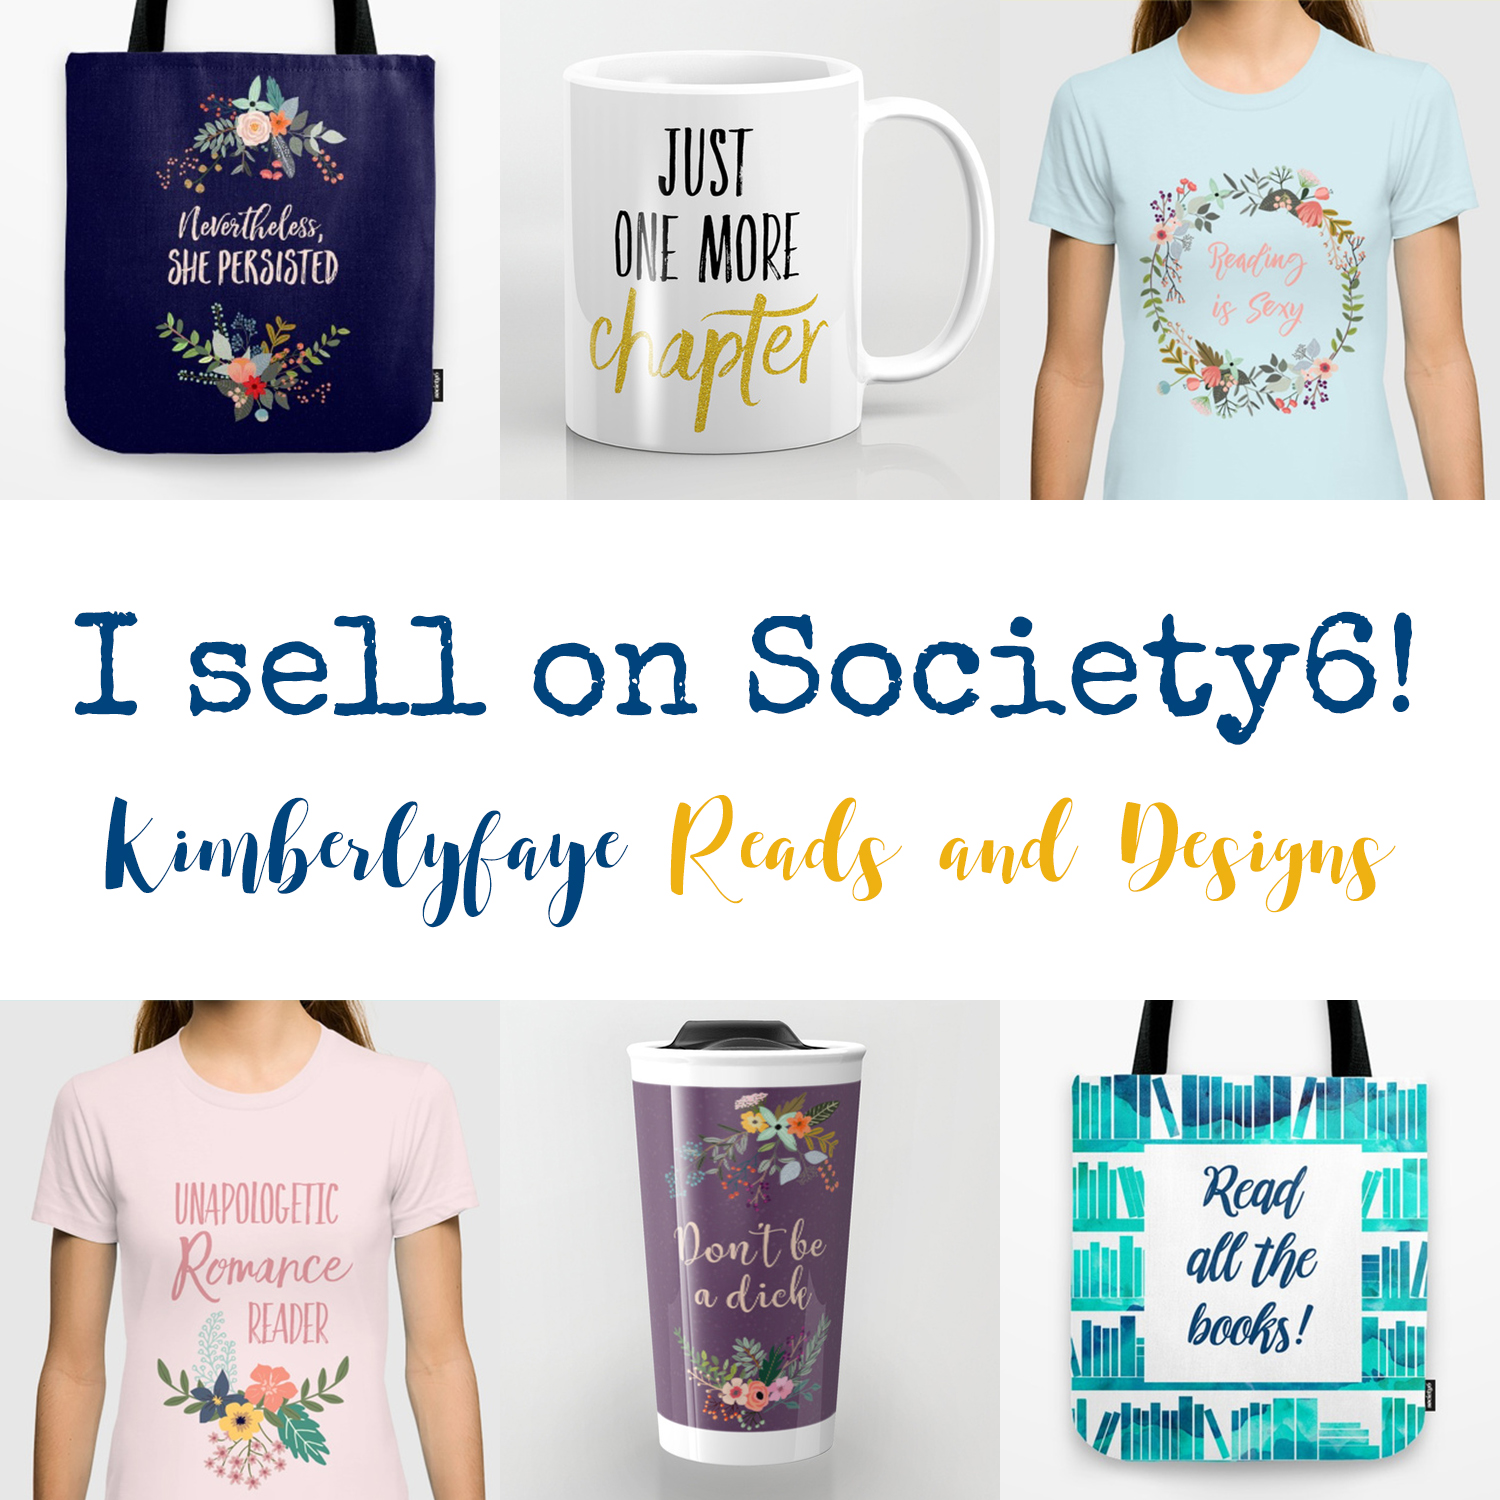 I sell on Society6